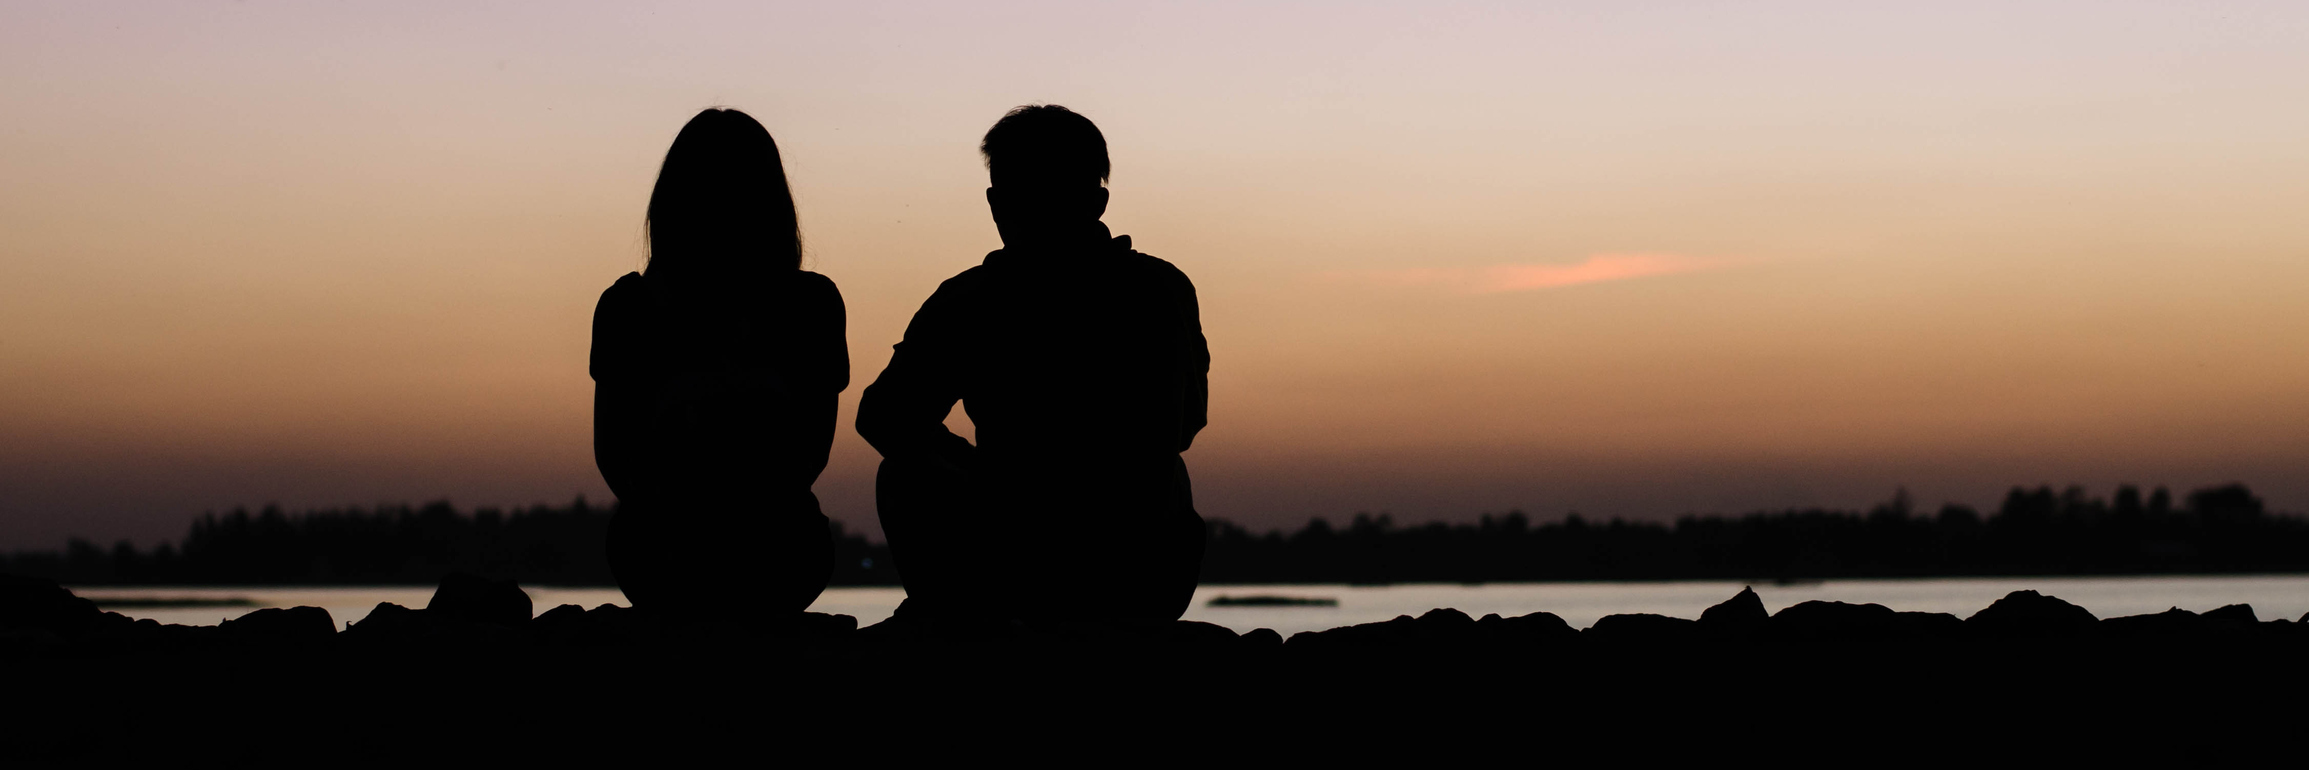 silhouette of man and woman against sunset